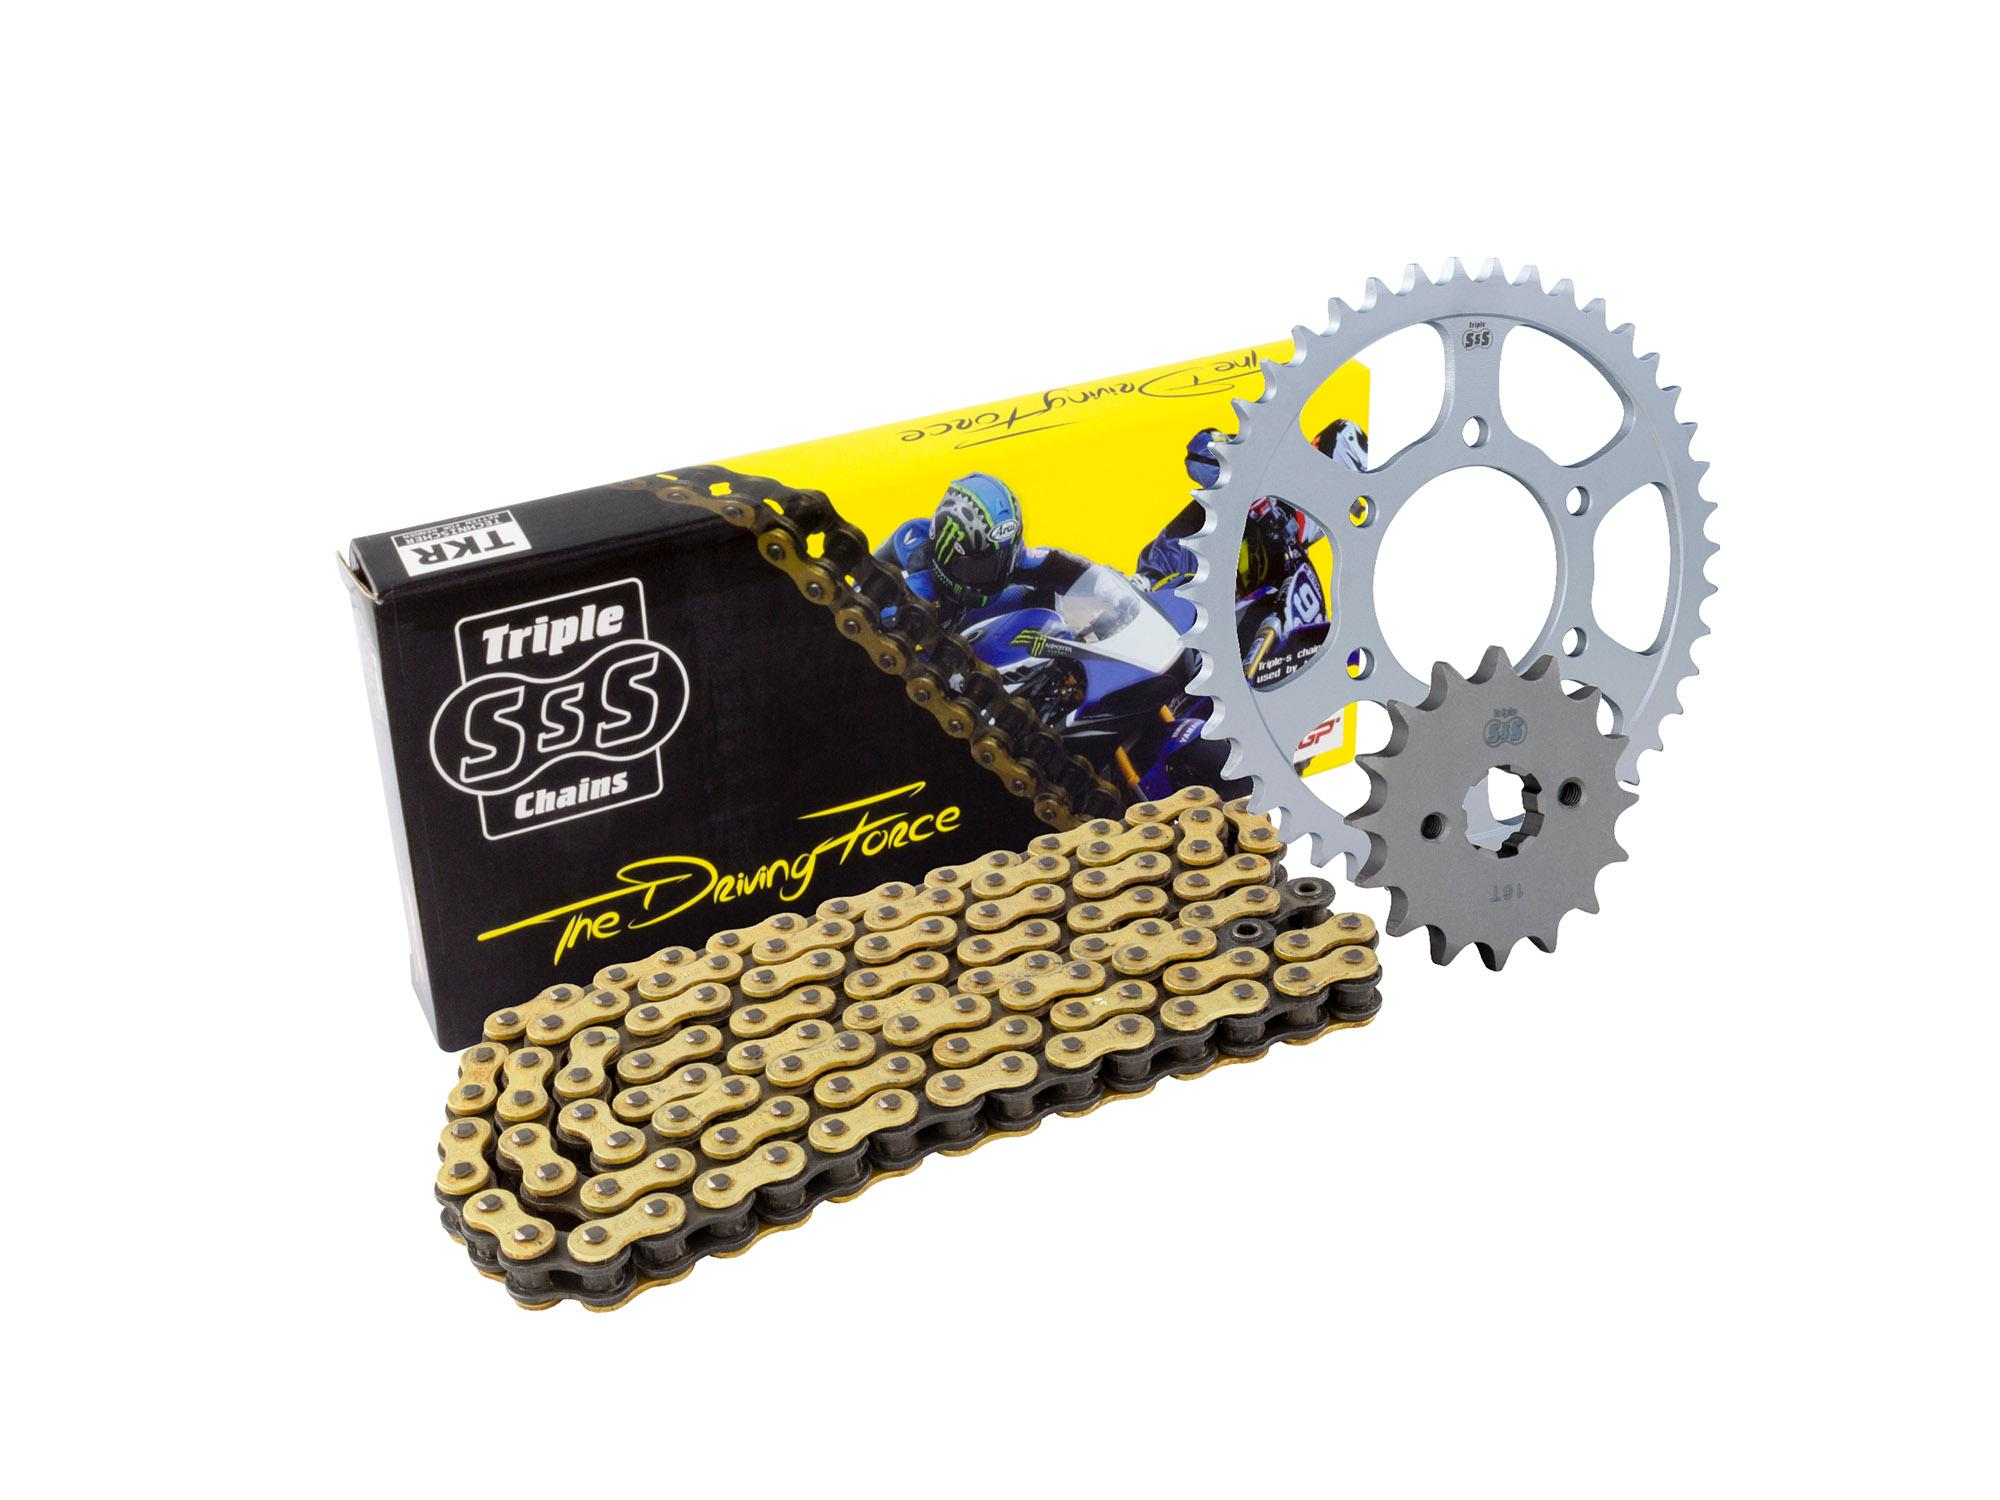 Suzuki GSR750 L1-L6 (ABS) 11-16 Chain & Sprocket Kit: 17T Front, 42T Rear, HD O-Ring Gold Chain 525H 112 Link